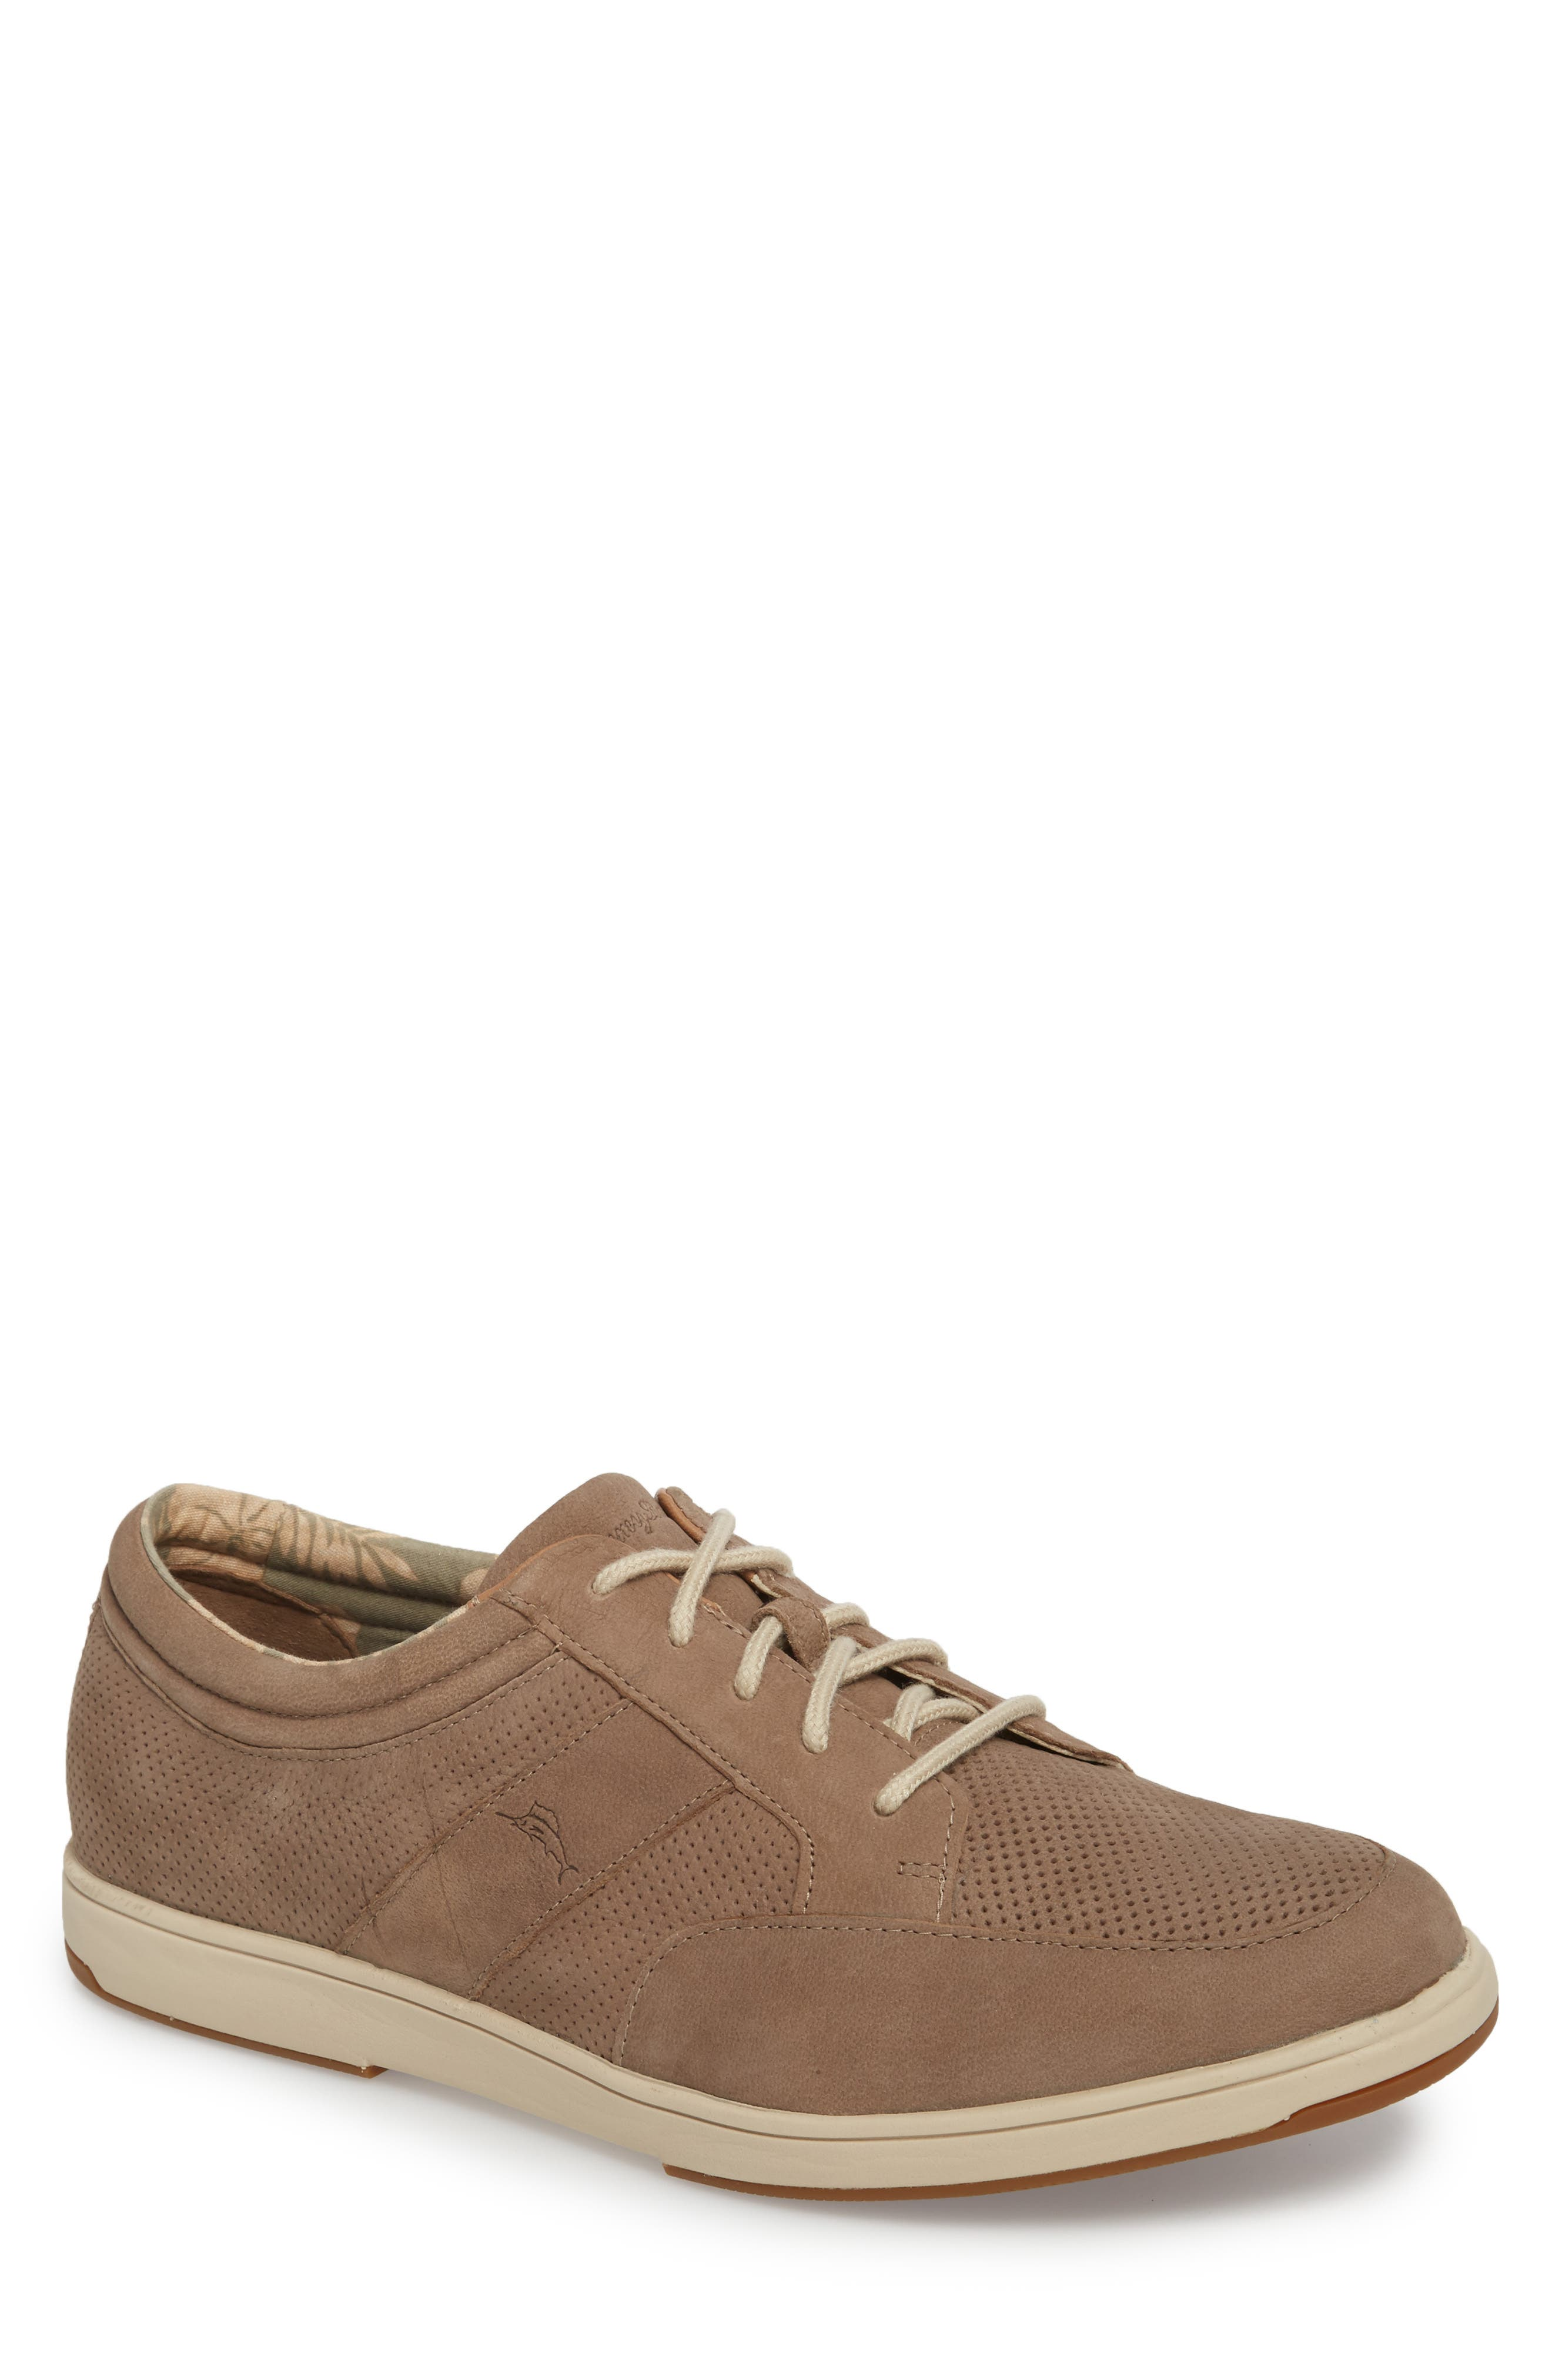 Caicos Authentic Low Top Sneaker,                             Main thumbnail 1, color,                             Taupe Leather